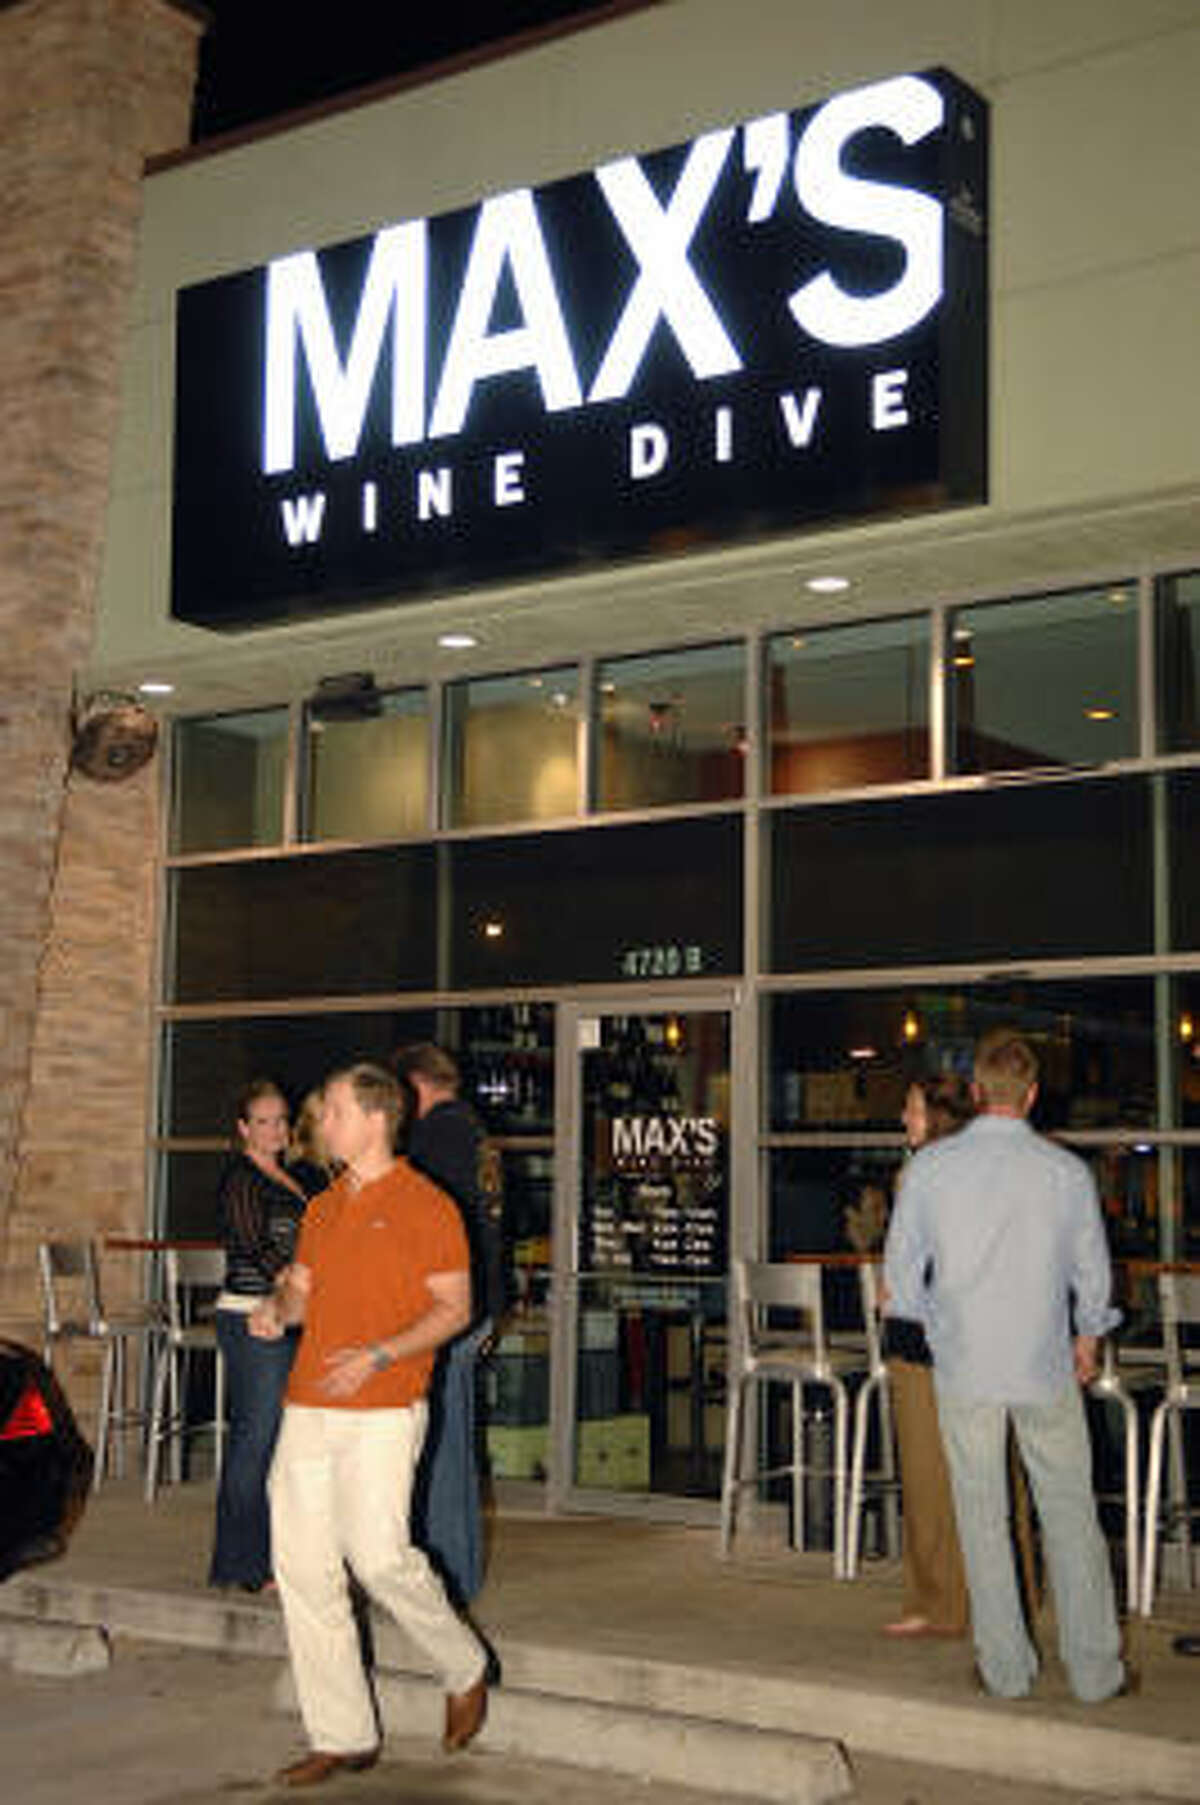 With wintry weather here, a quiet evening with a bottle of wine is an great way to warm up with friends. These local wine bars are the perfect place to get cozy and enjoy the weekend. Max's Wine Dive, 4720 Washington Ave., is a quaint, little wine bar with a great food and wine menu.